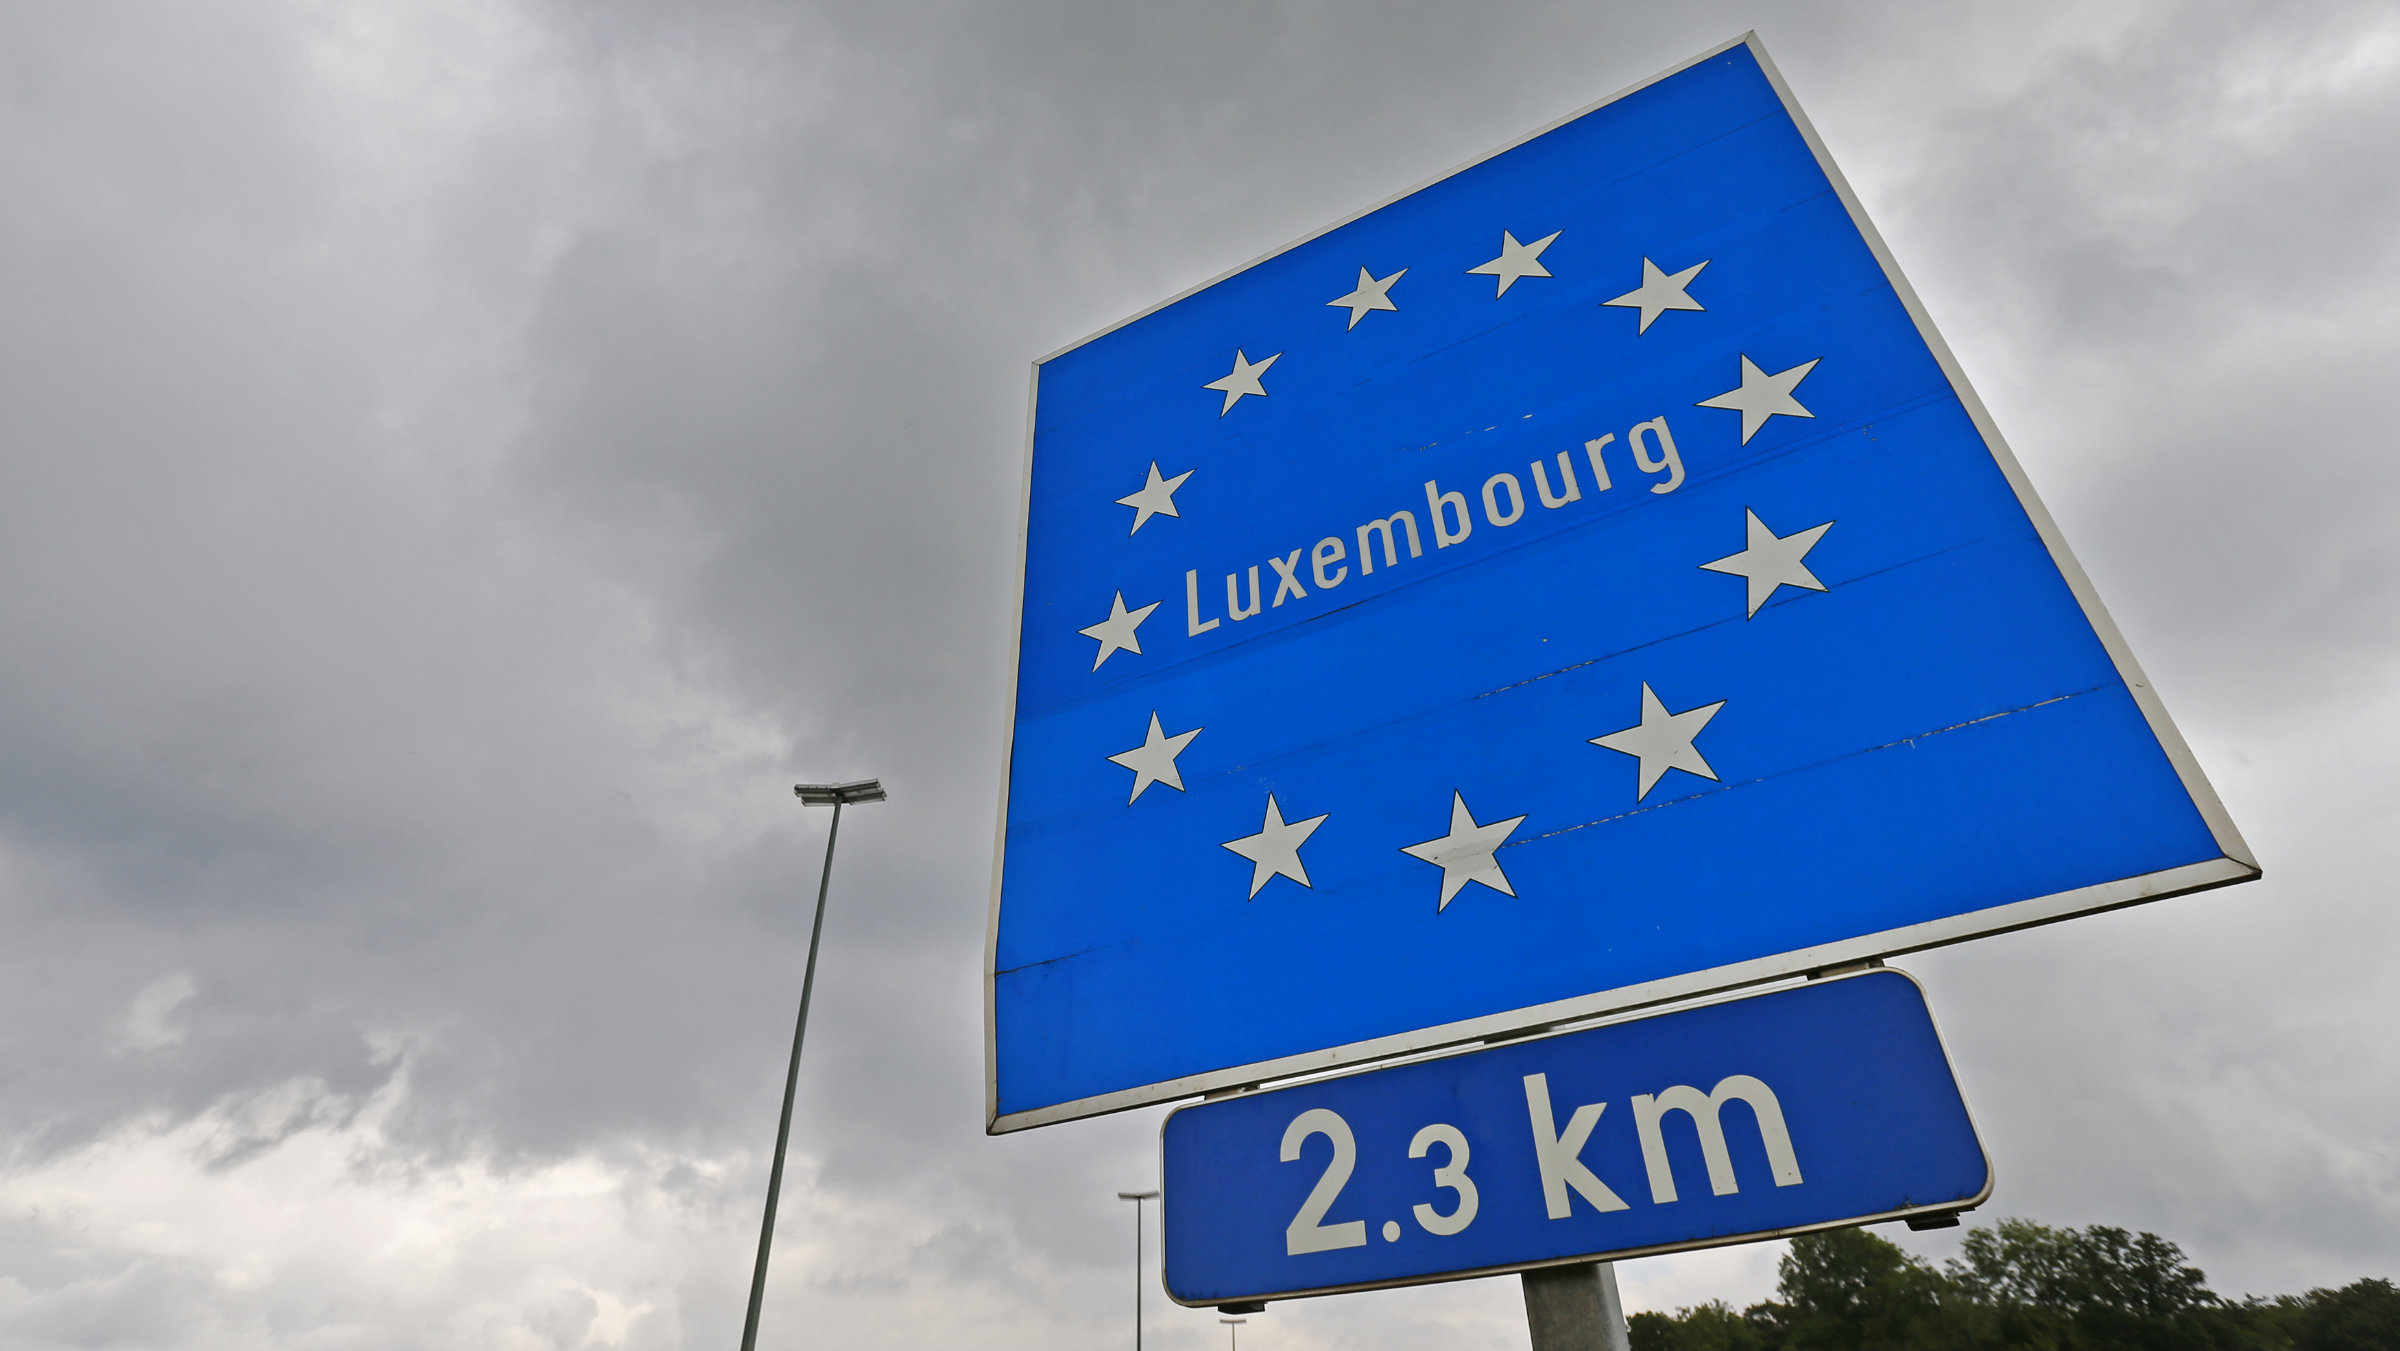 A Luxembourg road sign is seen at the border between Belgium and Luxembourg.